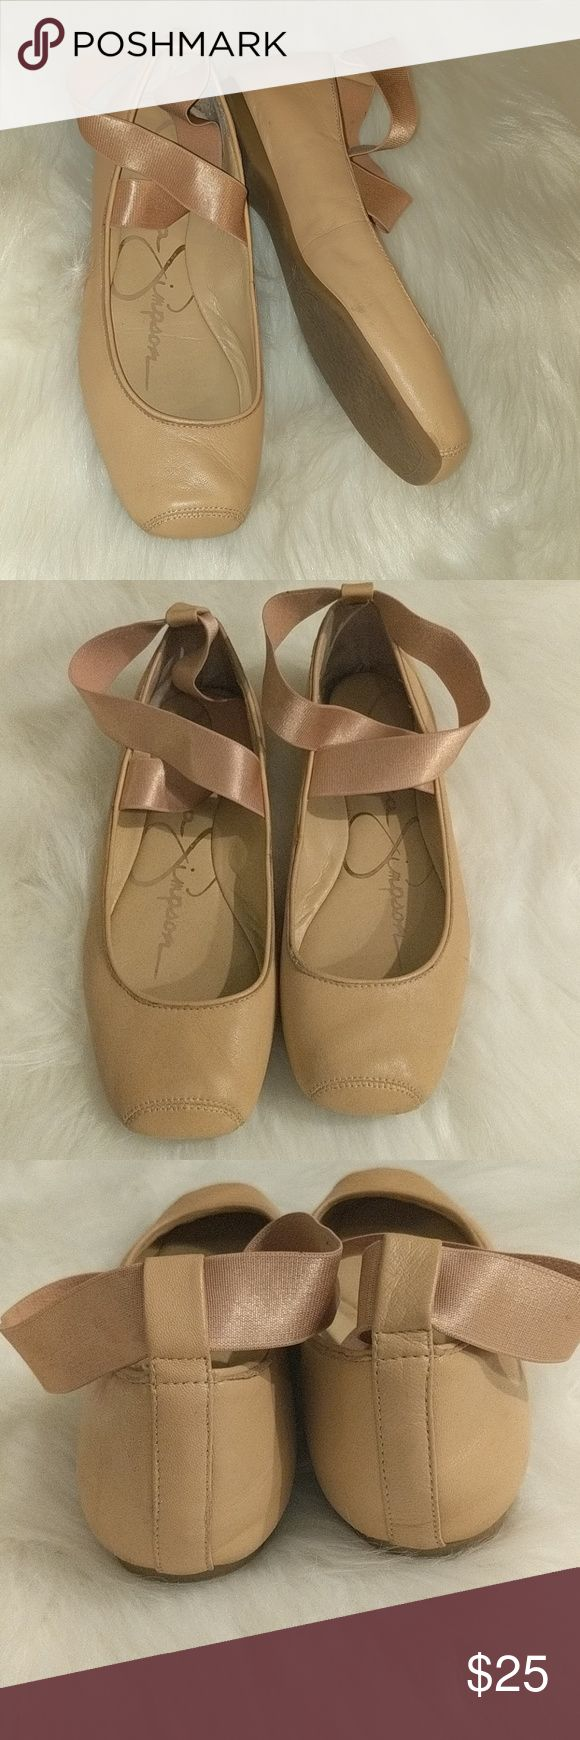 Jessica Simpson ballet flats in nude blush Basket flats with ankle strap Jessica Simpson Shoes Flats & Loafers